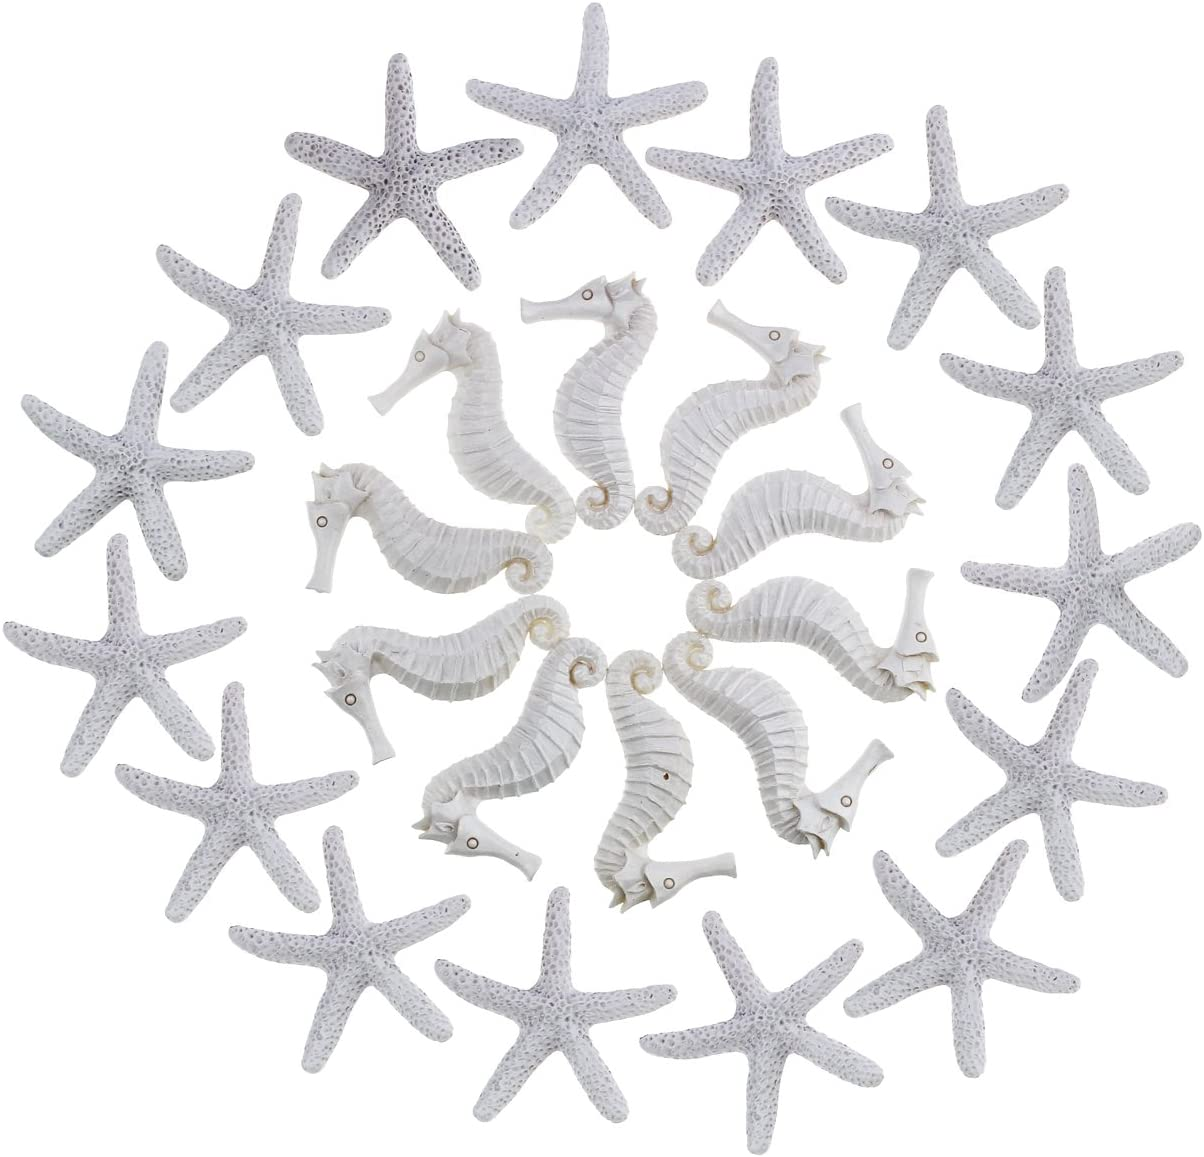 Goodma Resin Pencil Finger Seashells for Crafts, 15 Pieces Starfish and 10 Pieces Seahorse Set for Home Wedding Decor